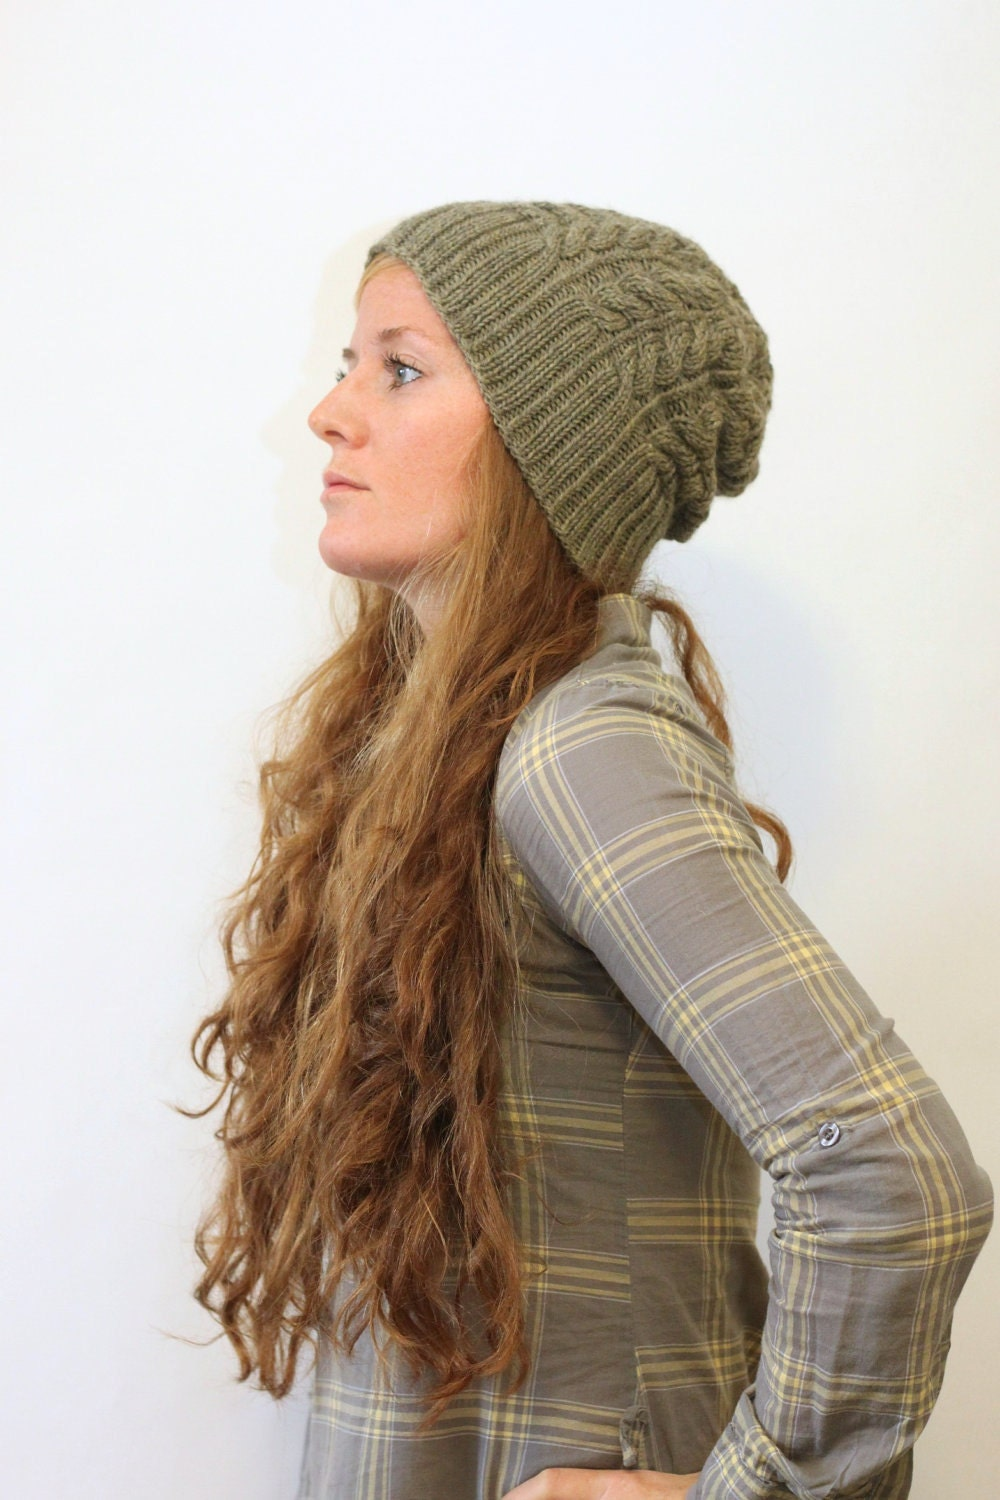 Knitting Patterns For Toques : KATHLEEN // hat worsted cable rib toque knitting by ...